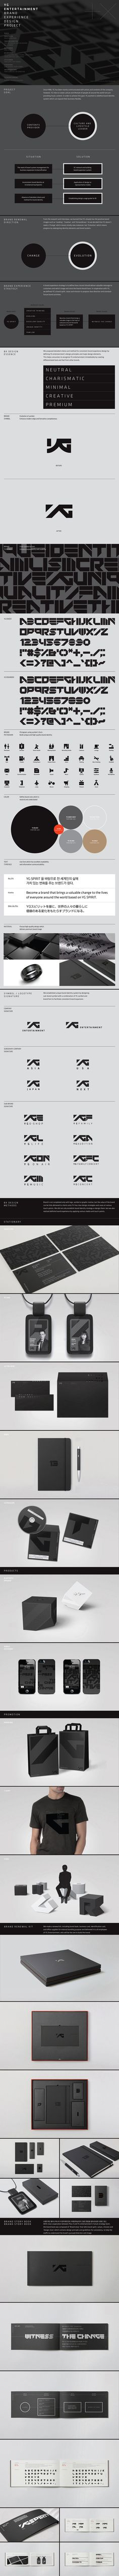 YG ENTERTAINMENT Brand Identity Renewal by Plus X , via Behance